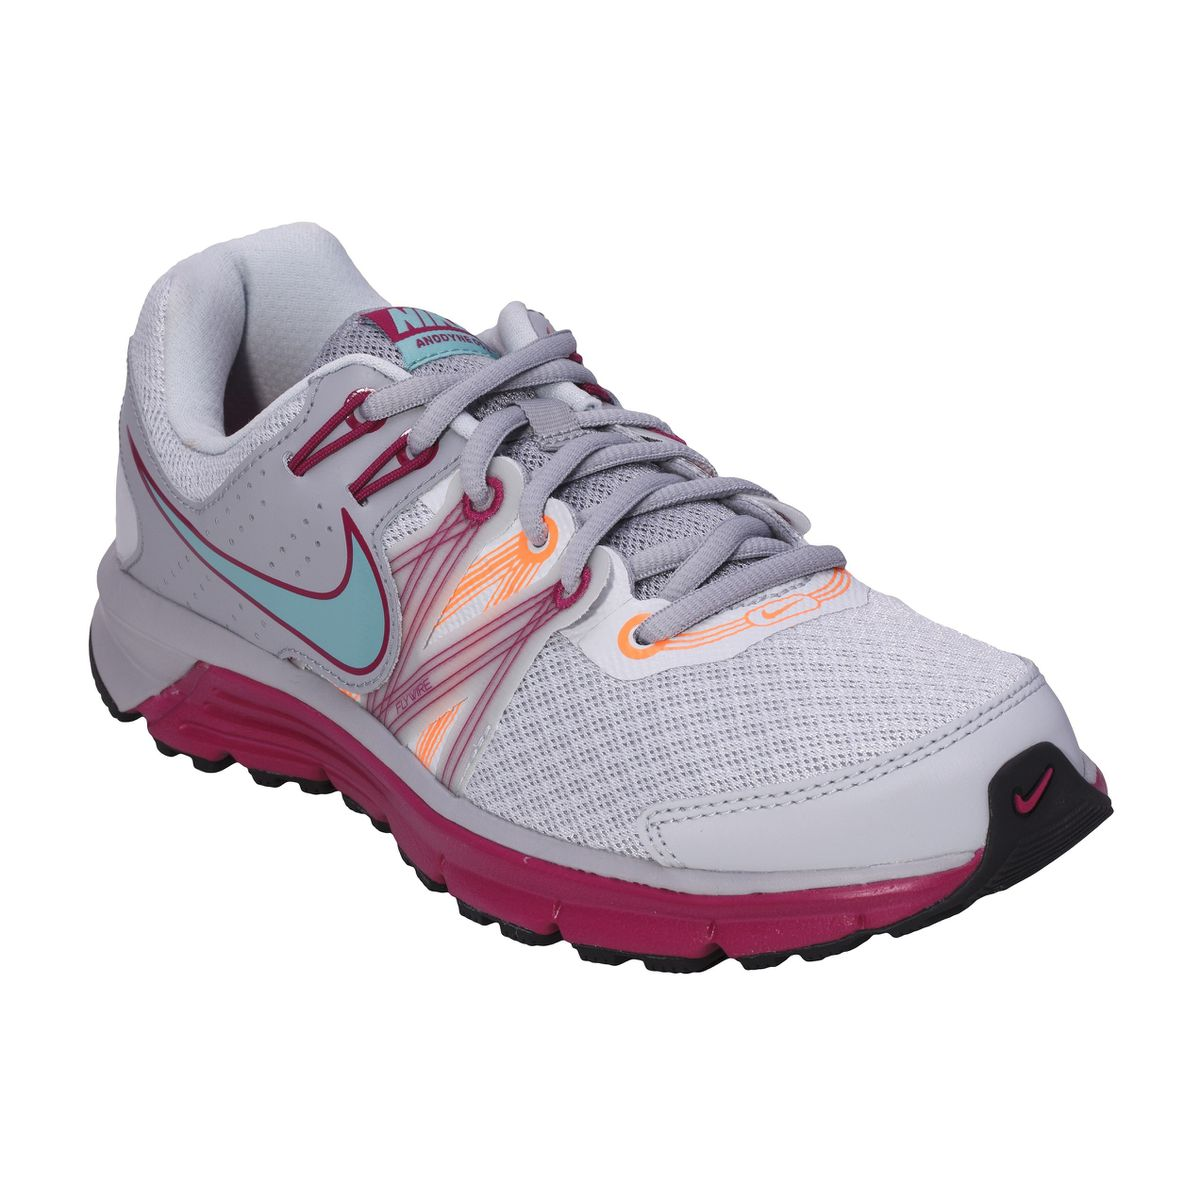 Womens Running Shoes South Africa 107